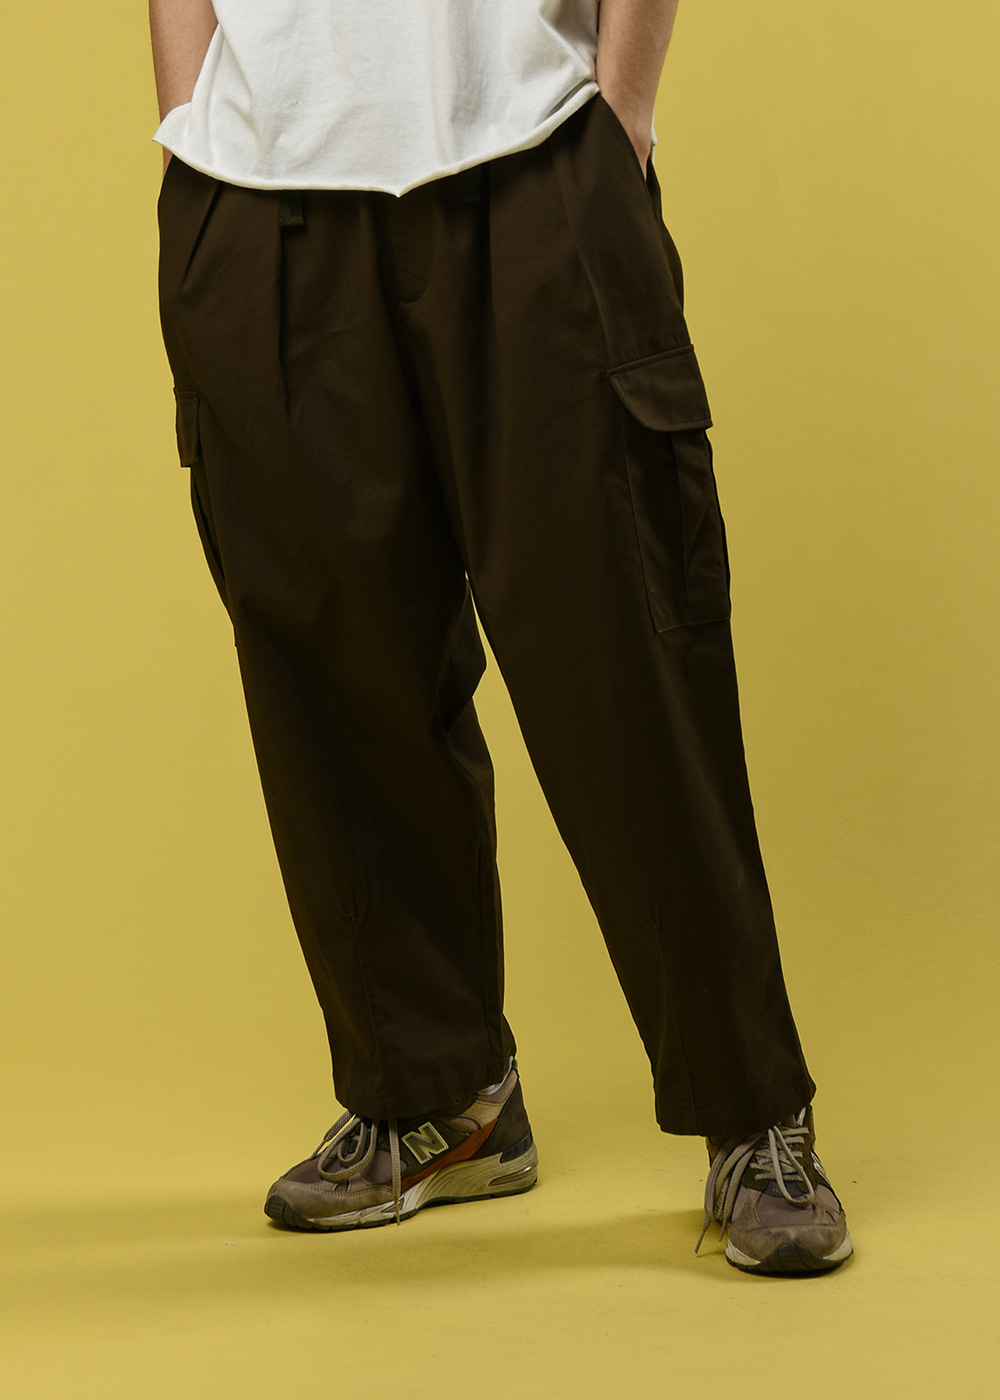 Cargo pocket ballon pants [dark brown]